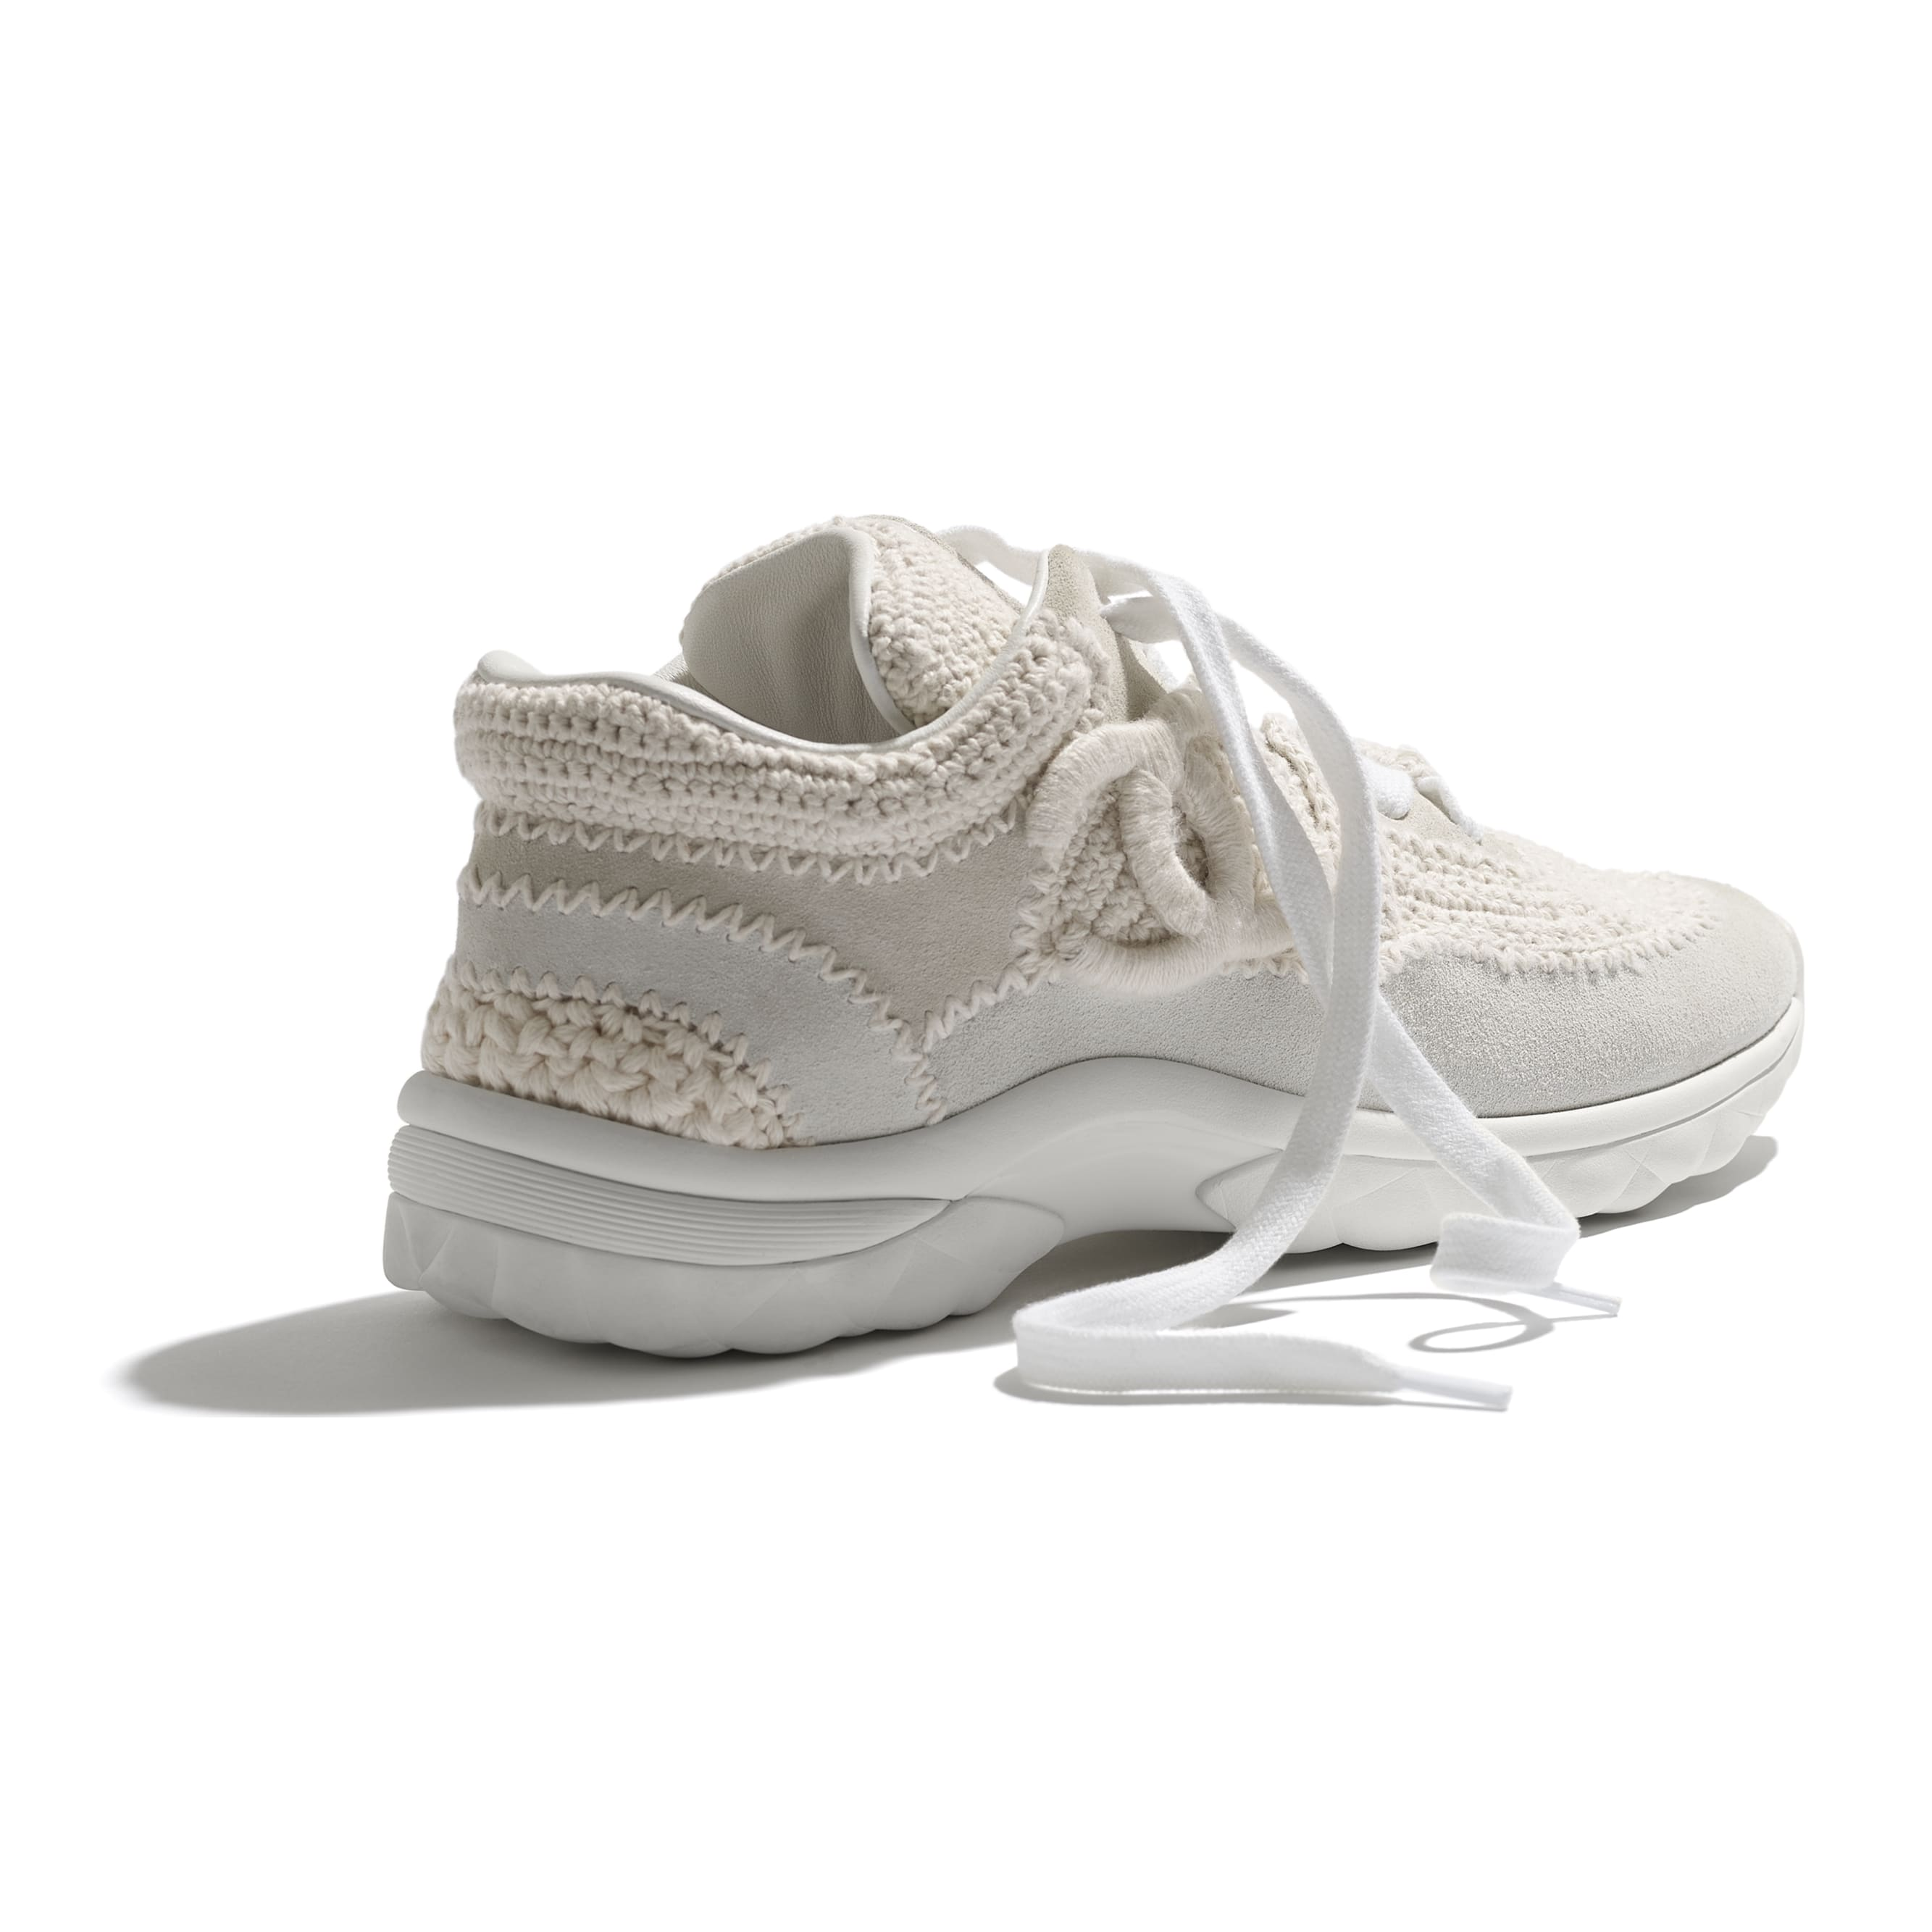 Trainers - Ivory - CHANEL - Extra view - see standard sized version